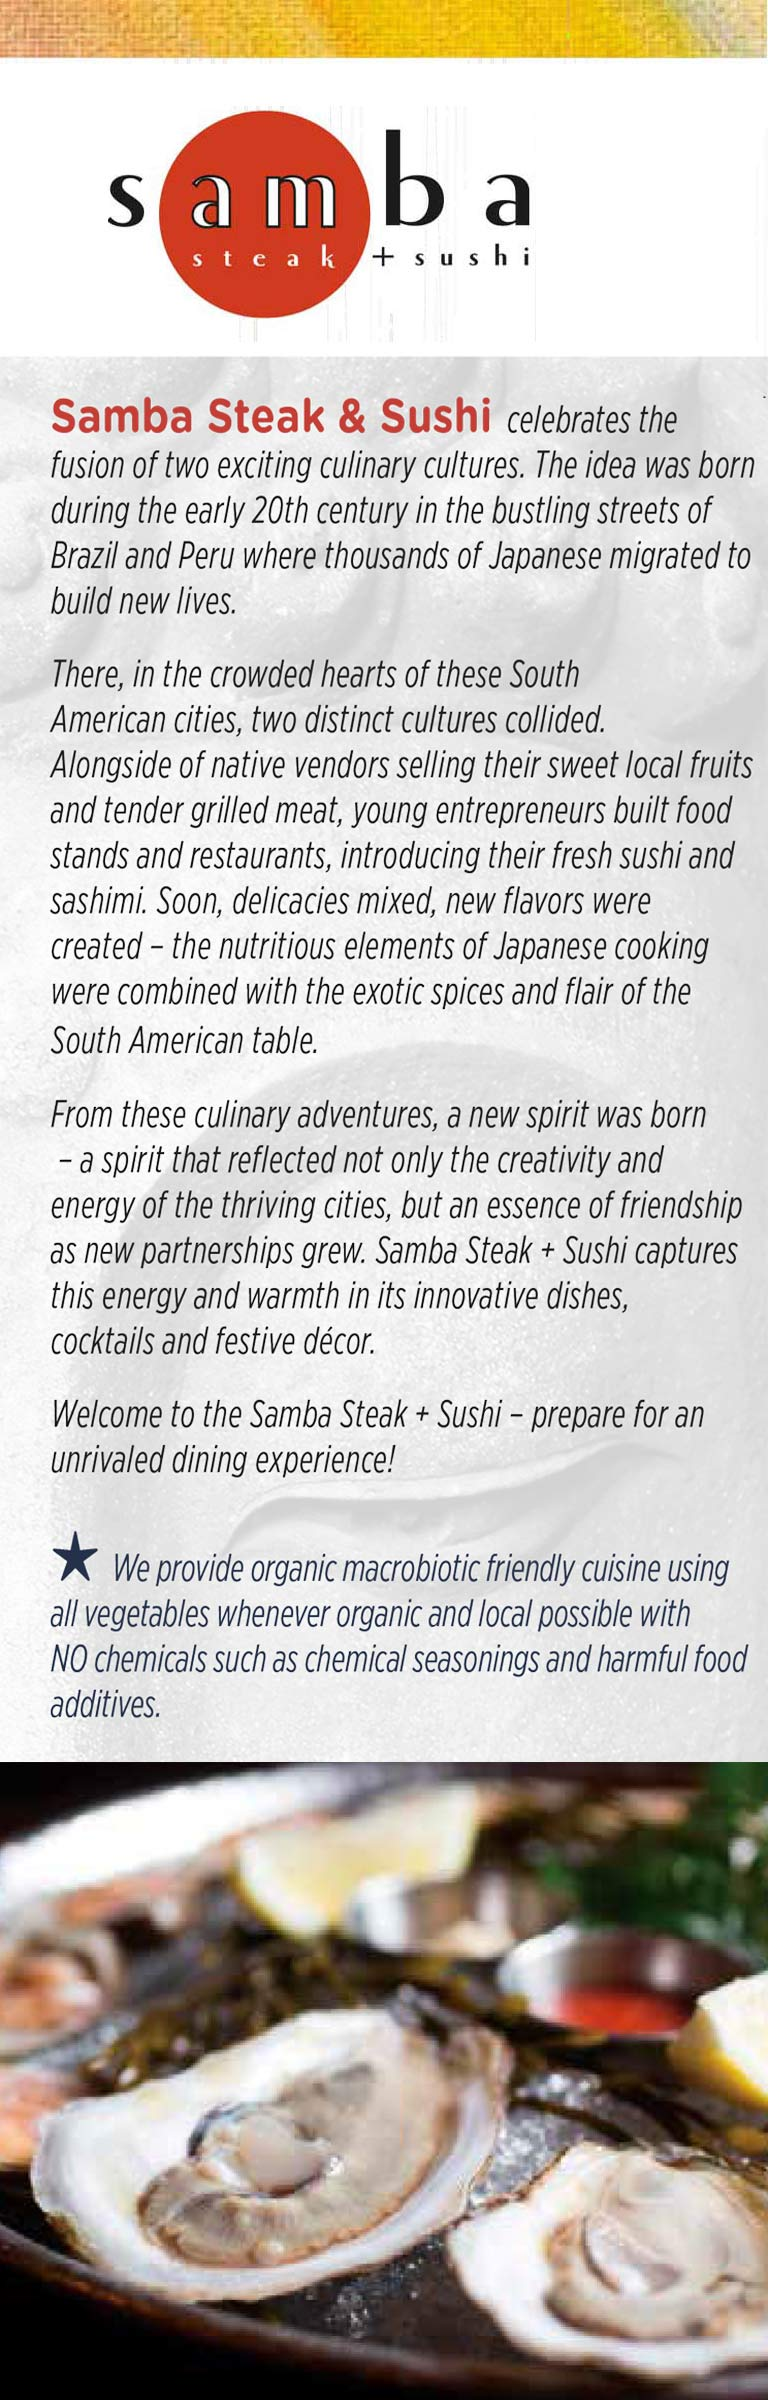 Samba Steak & Sushi Menu